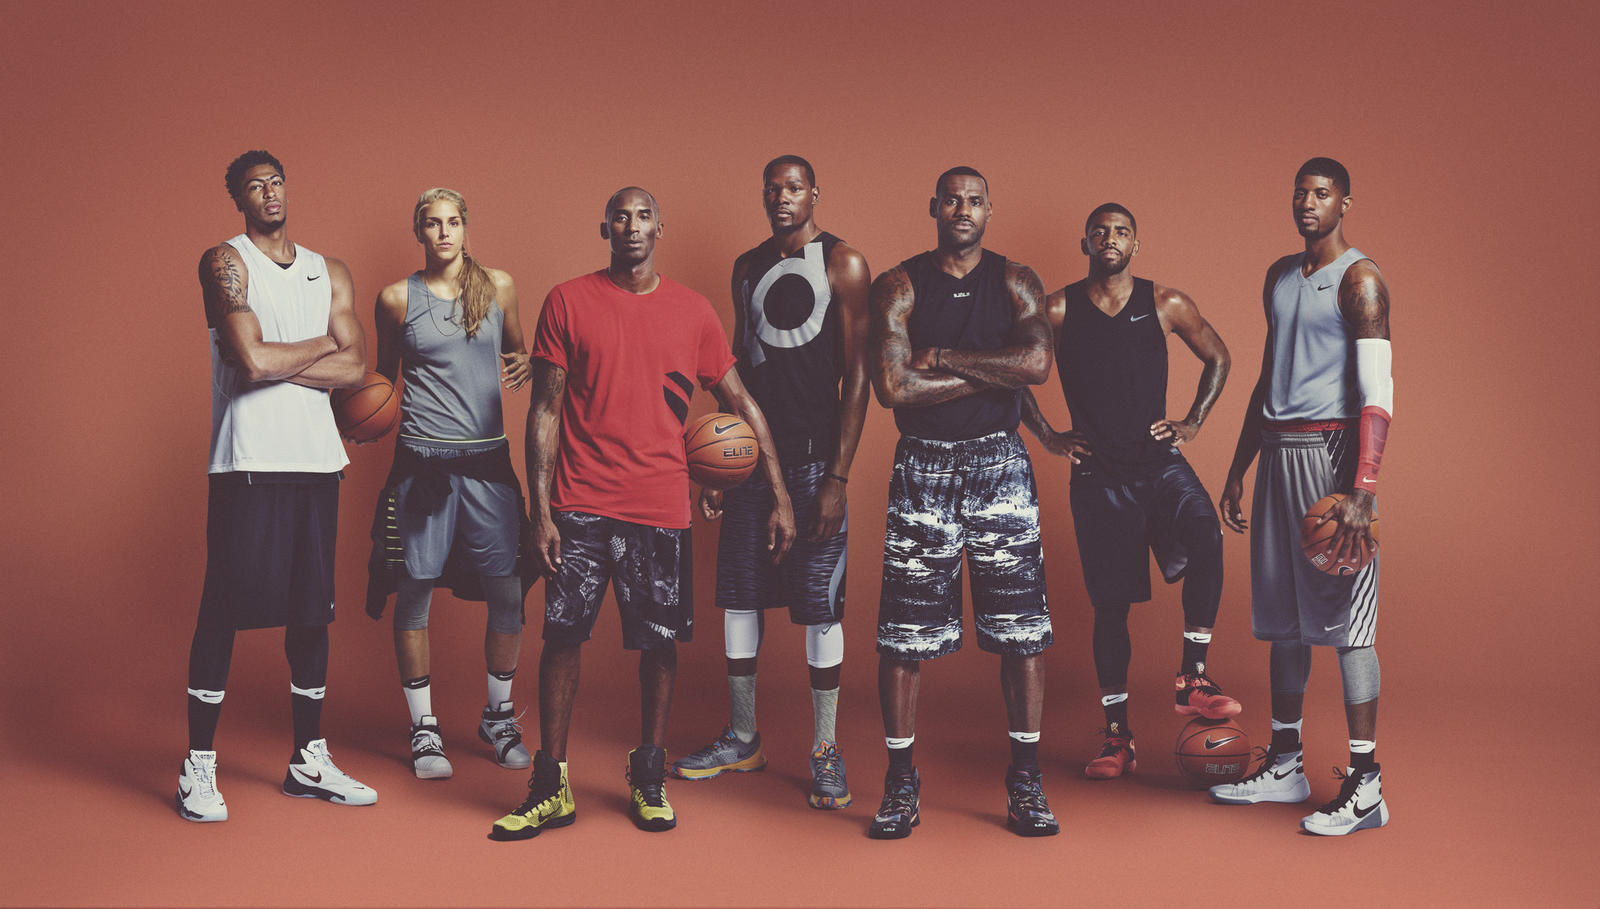 Nike Basketball Presents their NBA Athletes. Missing is Giannis A. (Photo by: @Nikebasketball)